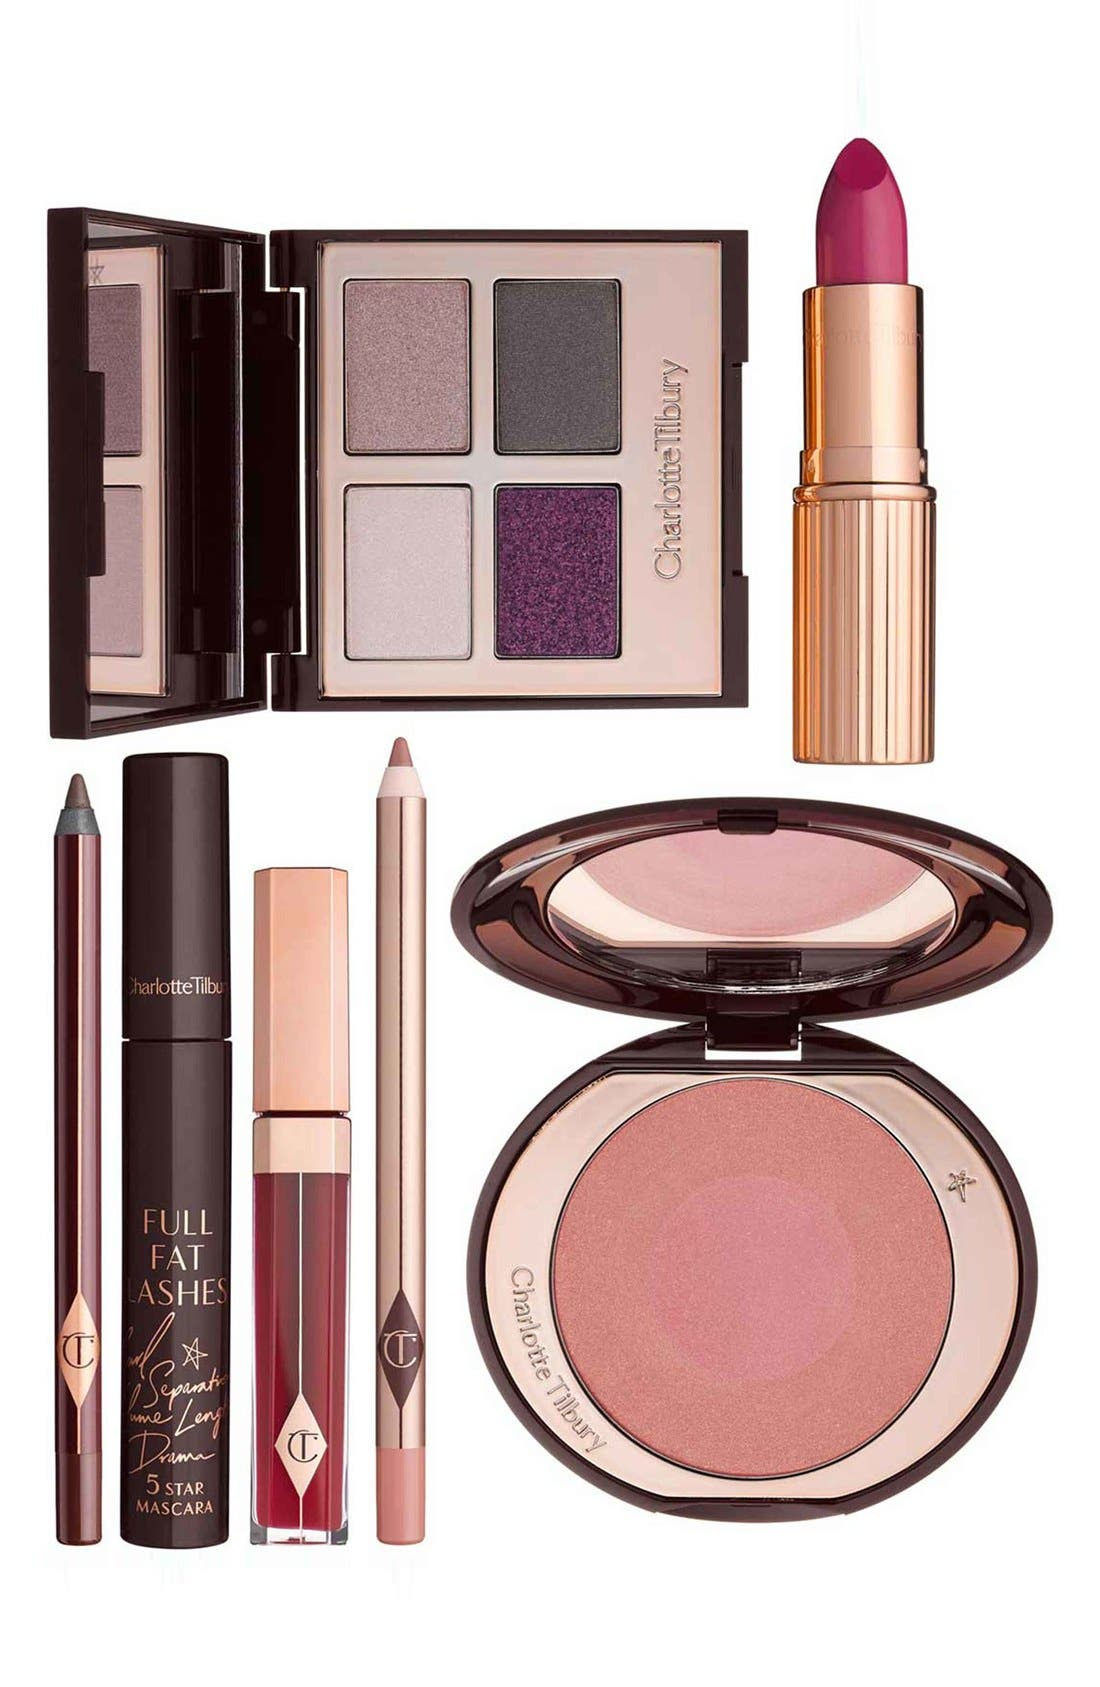 The Glamour Muse Look Set, Main, color, NO COLOR